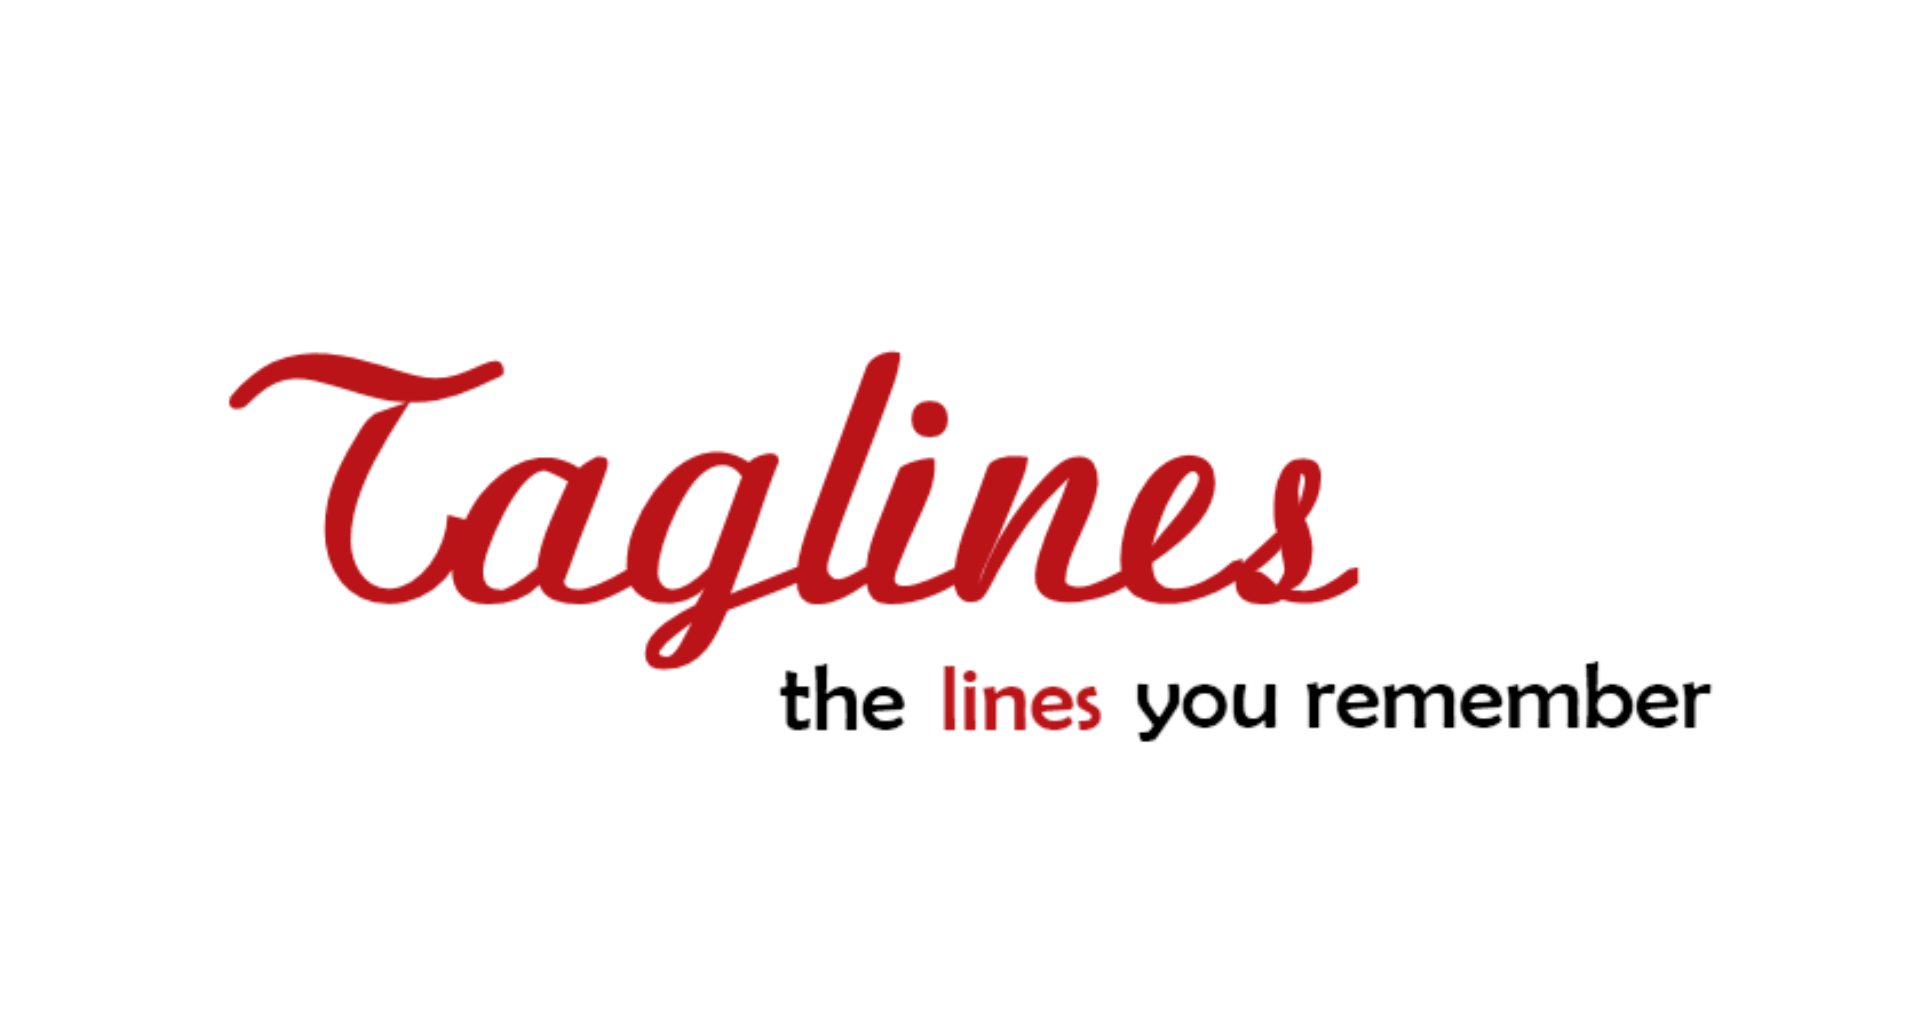 develop 6 PERFECT taglines or slogans for your Brand